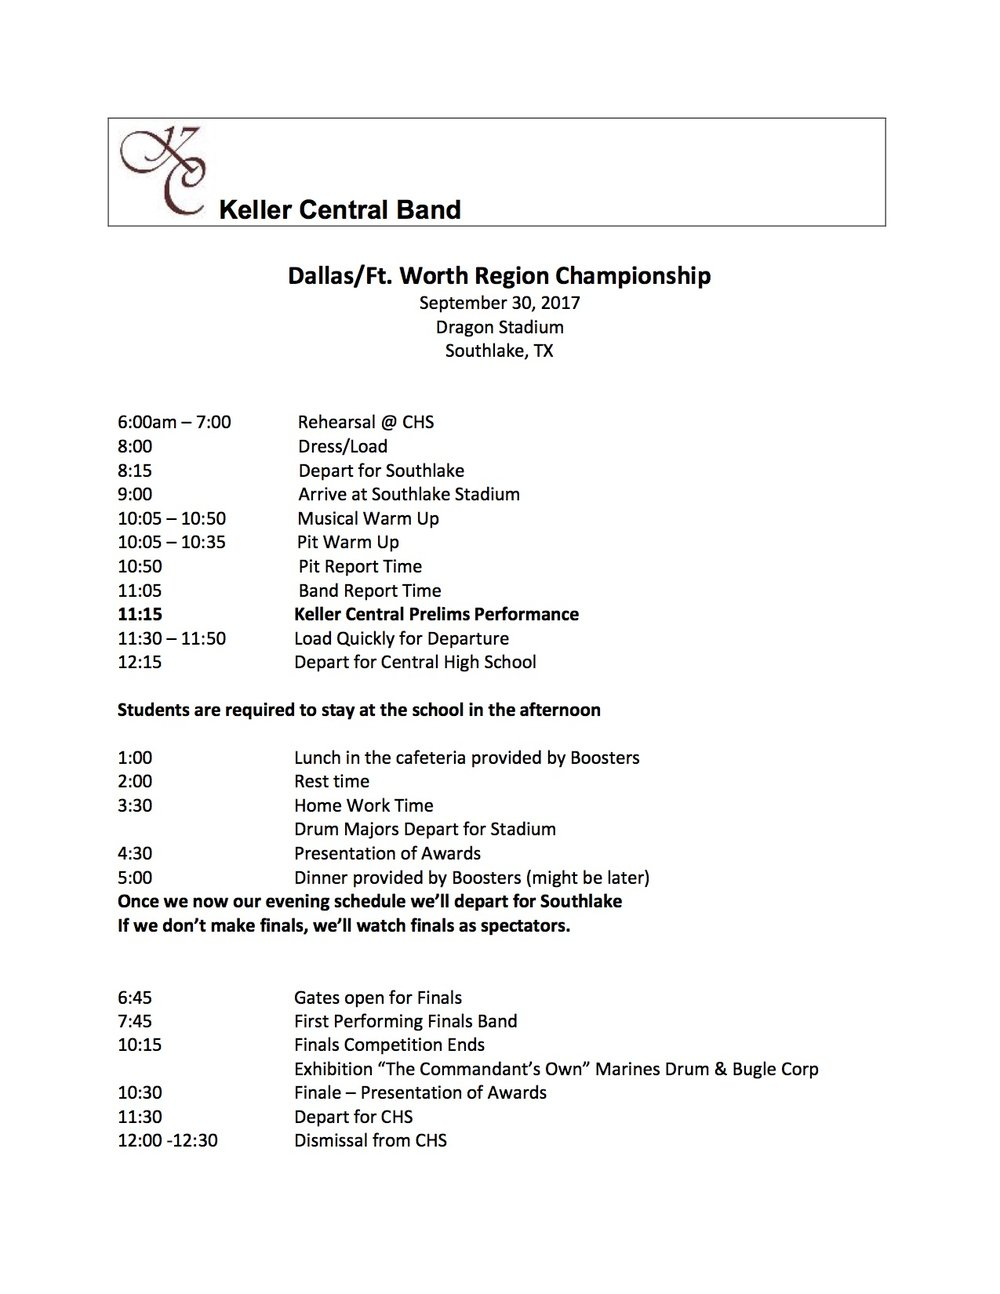 Dallas:Fort Worth BOA Itinerary .jpg